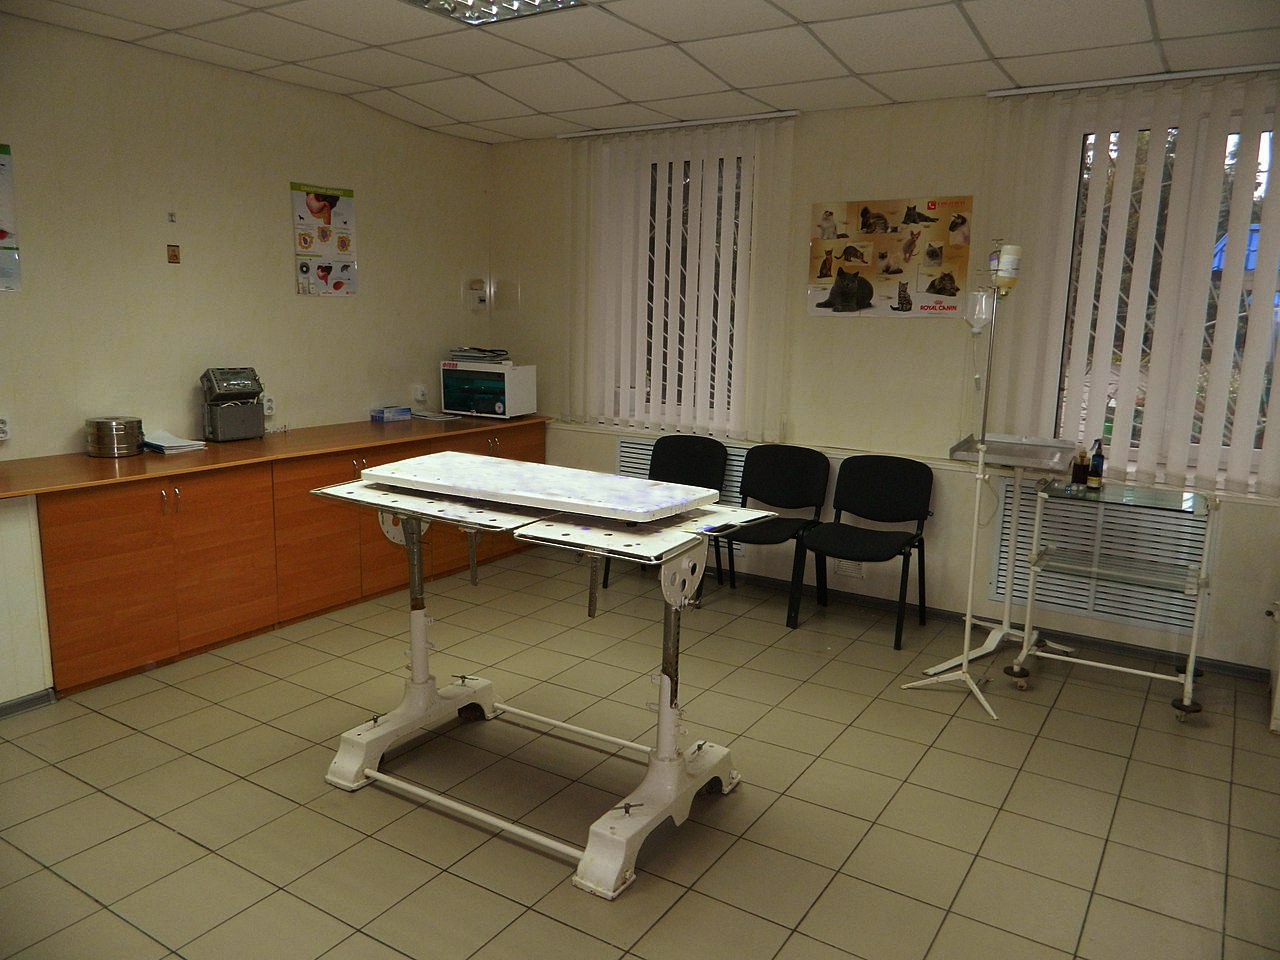 Clinic of Veterinary Medicine of Surgery and Obstetrics Department